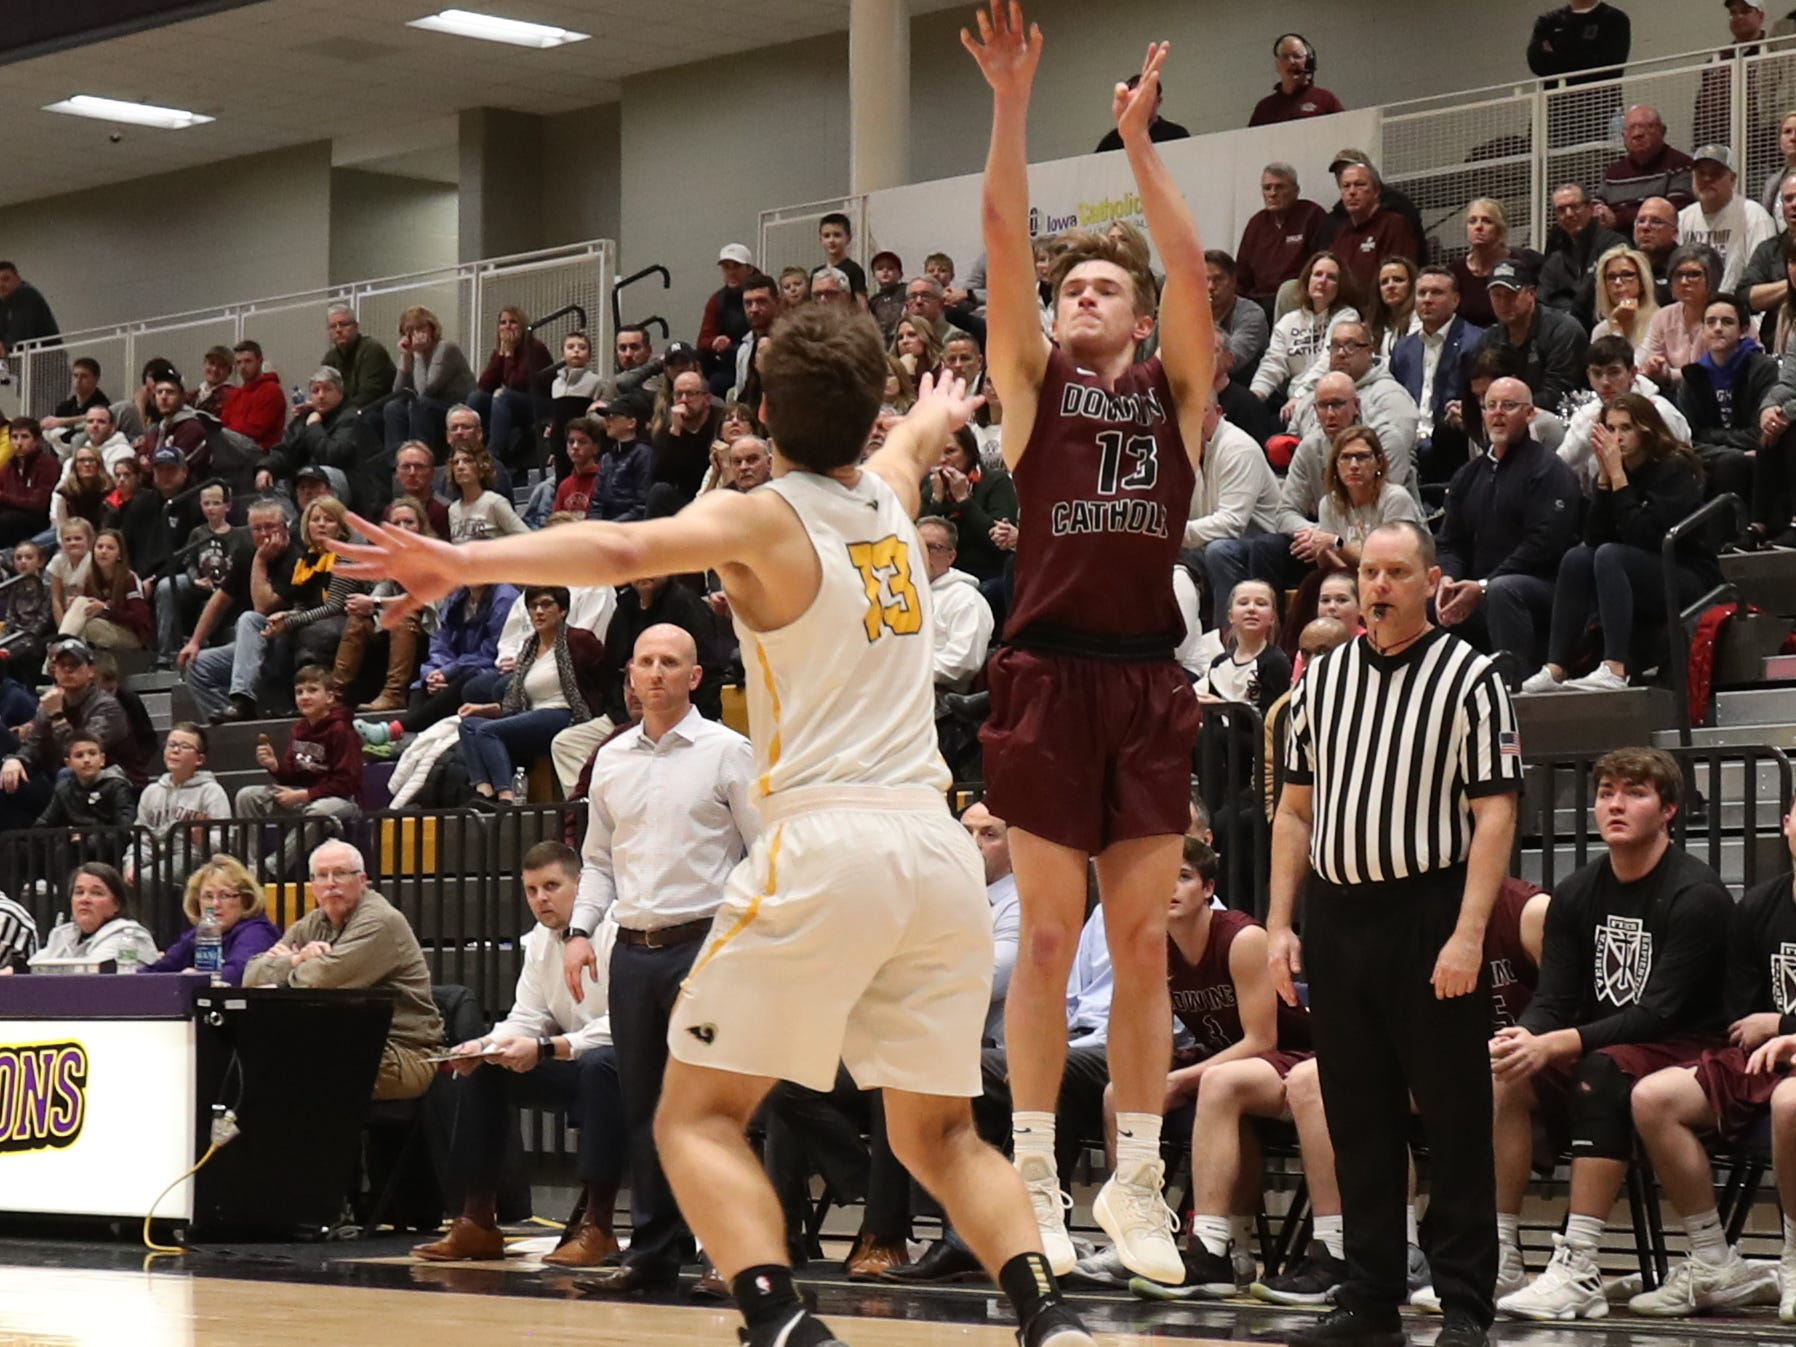 Dowling Catholic's Jack Lyman (13) shoots over the hand of Southeast Polk's Dominic Caggiano (13) during their game at Johnston High School in Johnston, Iowa, on Tuesday, Feb. 26, 2019. Dowling won the game 44-40 to advance to state.